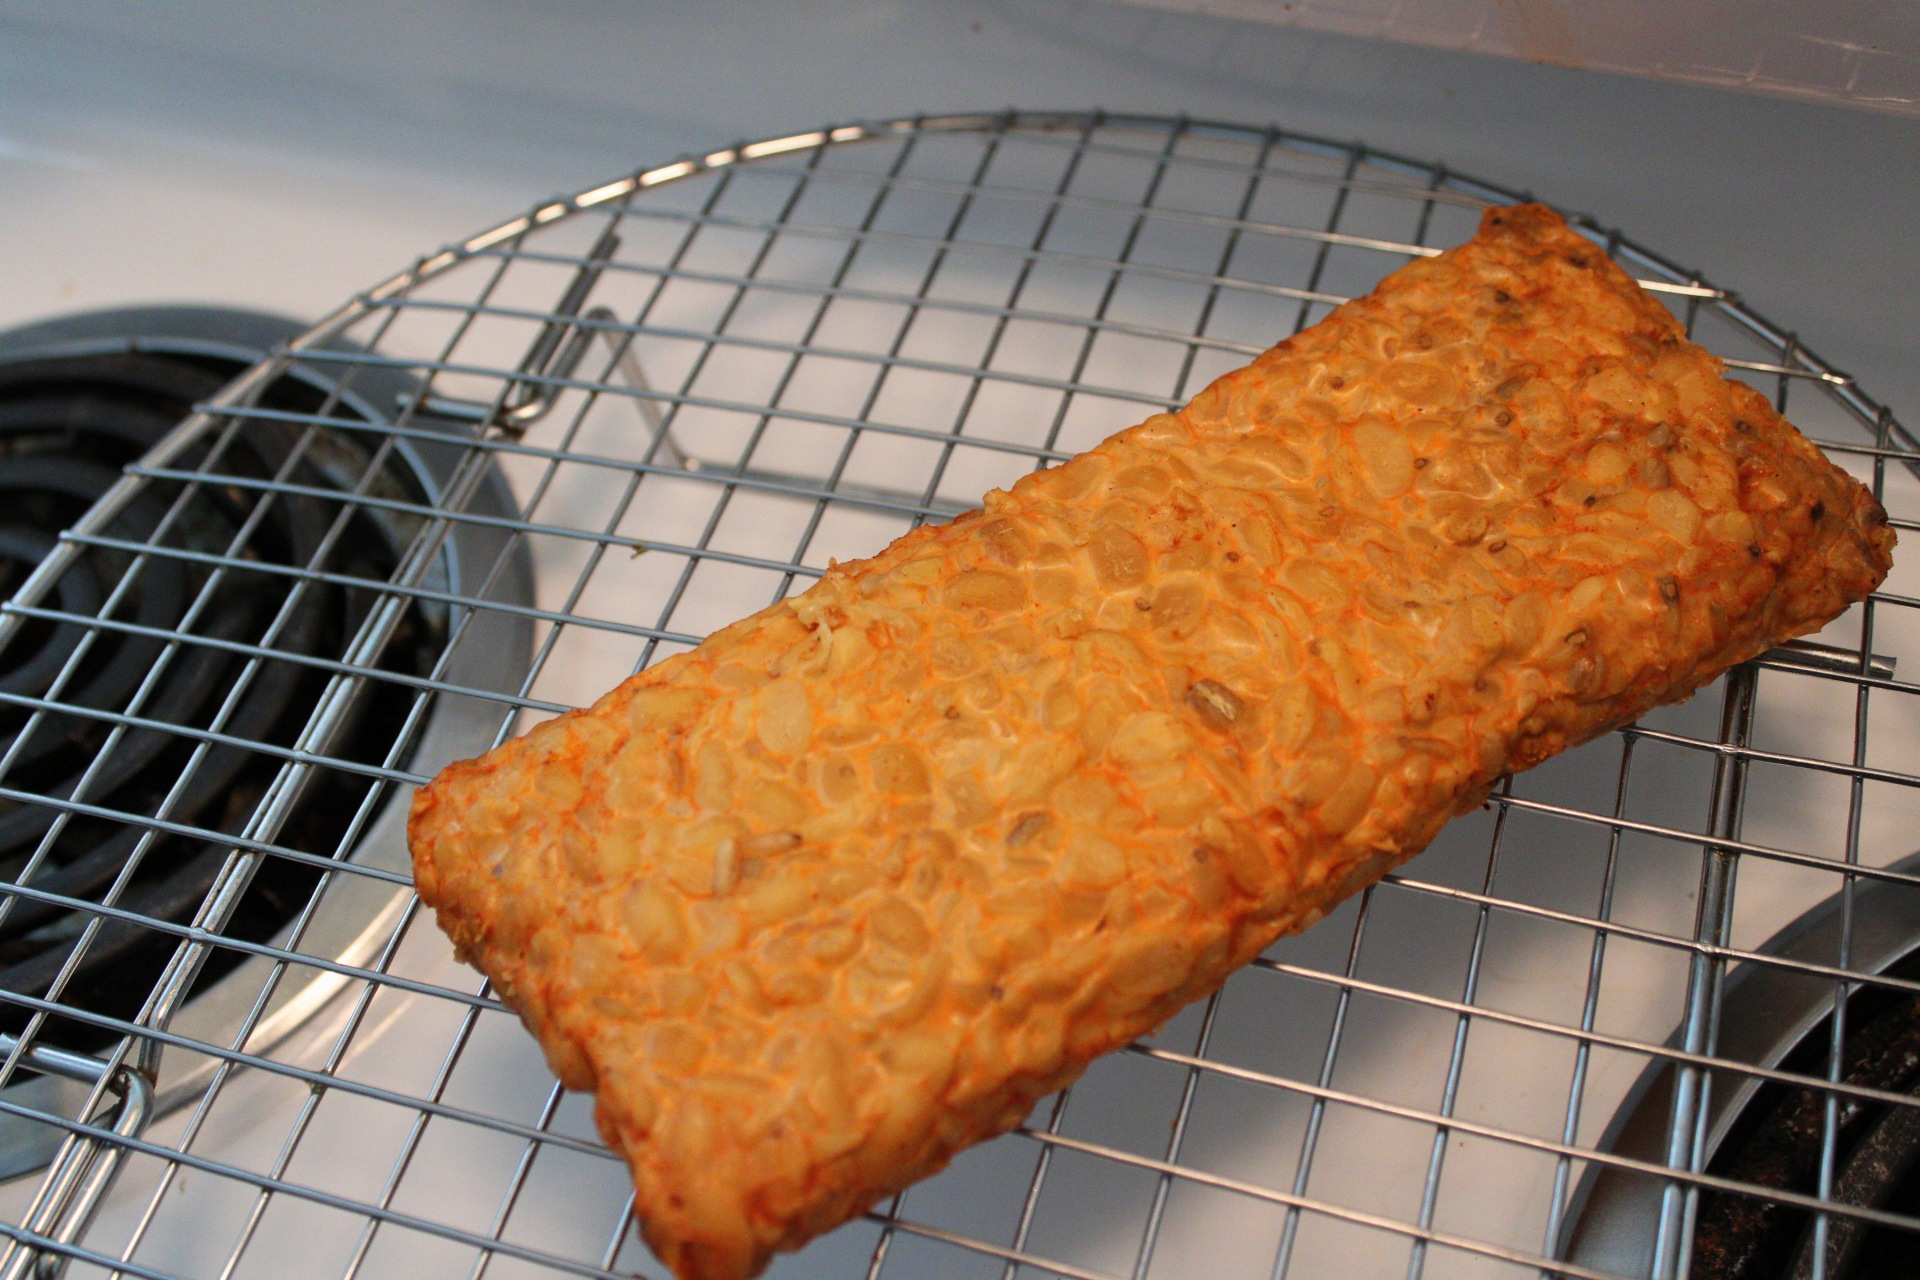 Steamed, flavored tempeh on a cooling rack